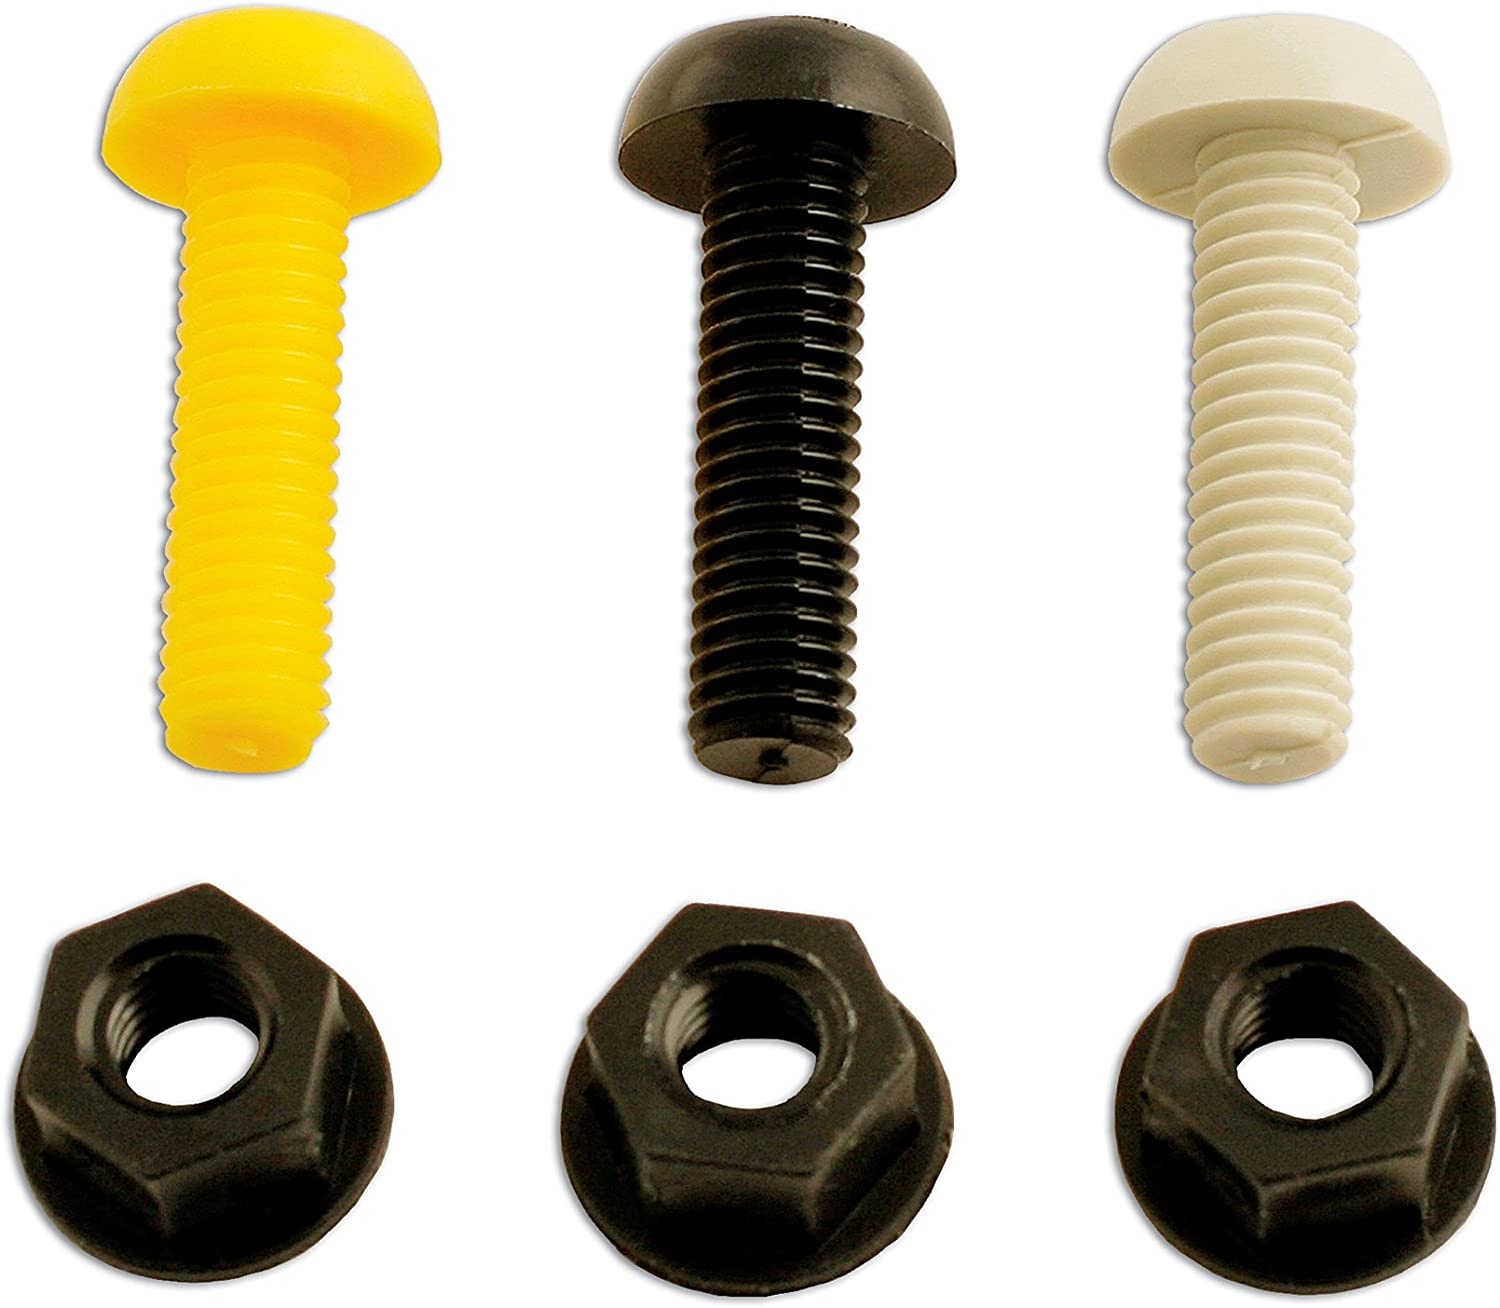 12x Hex or Wing Nut Nylon Plastic Washer Tough White or Black Hex bolt